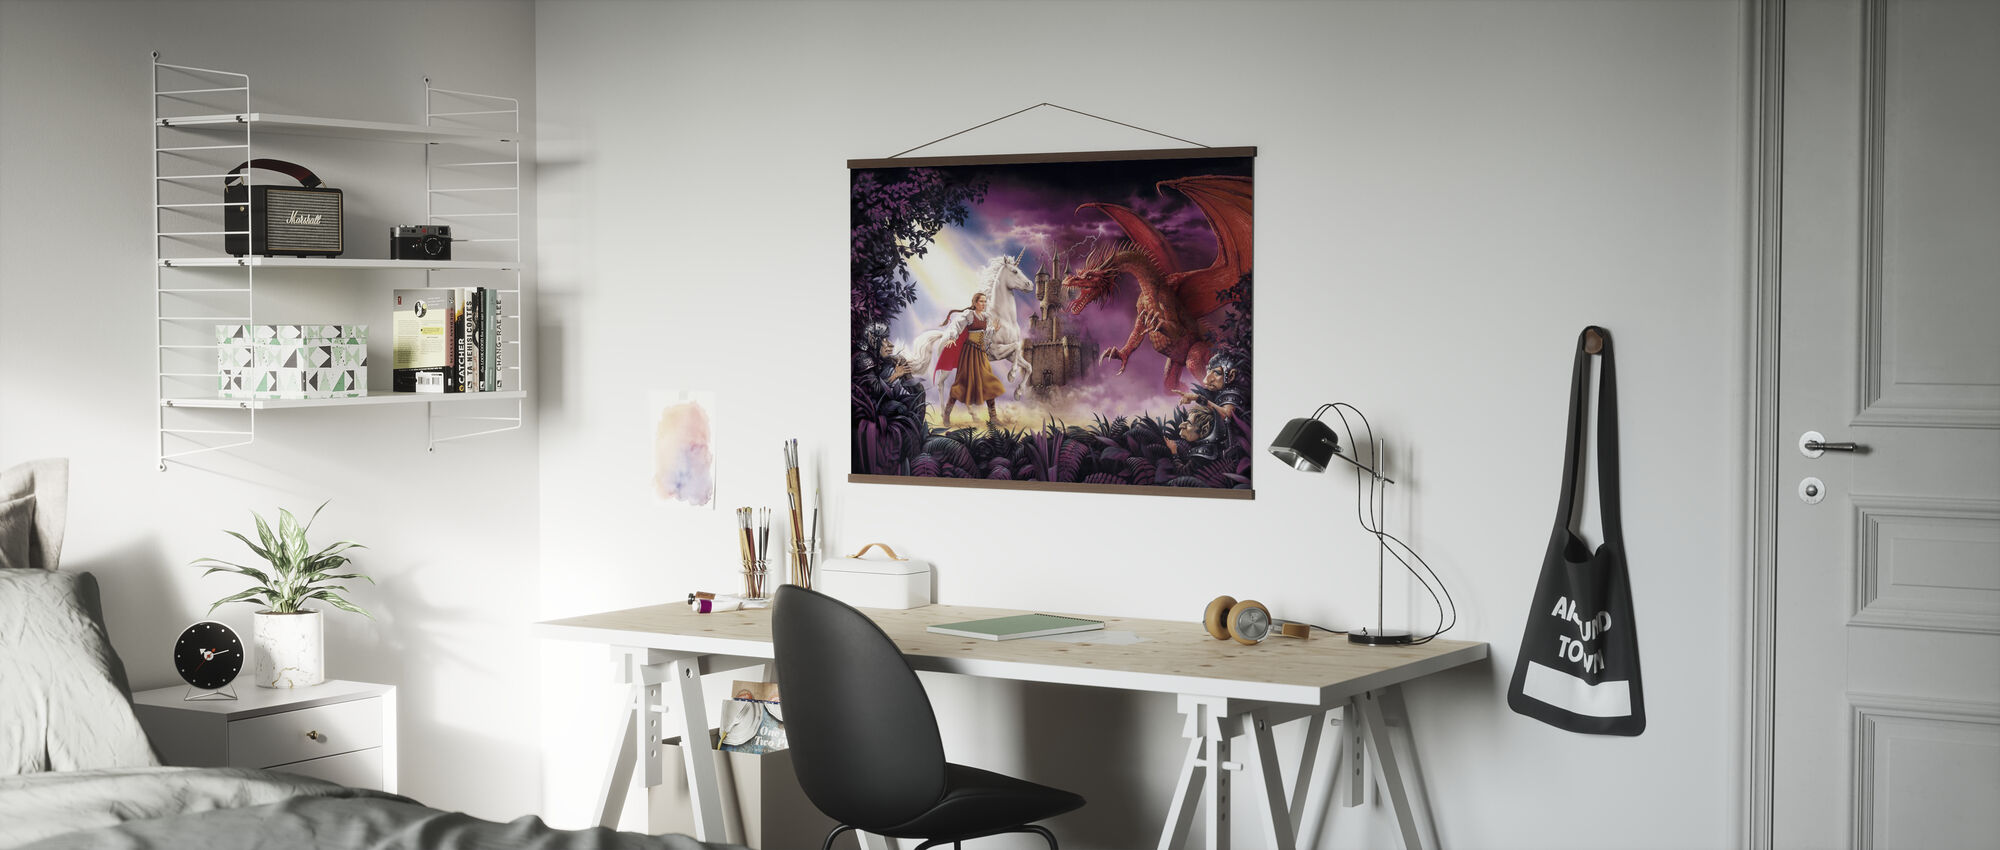 Enchanted - Poster - Office